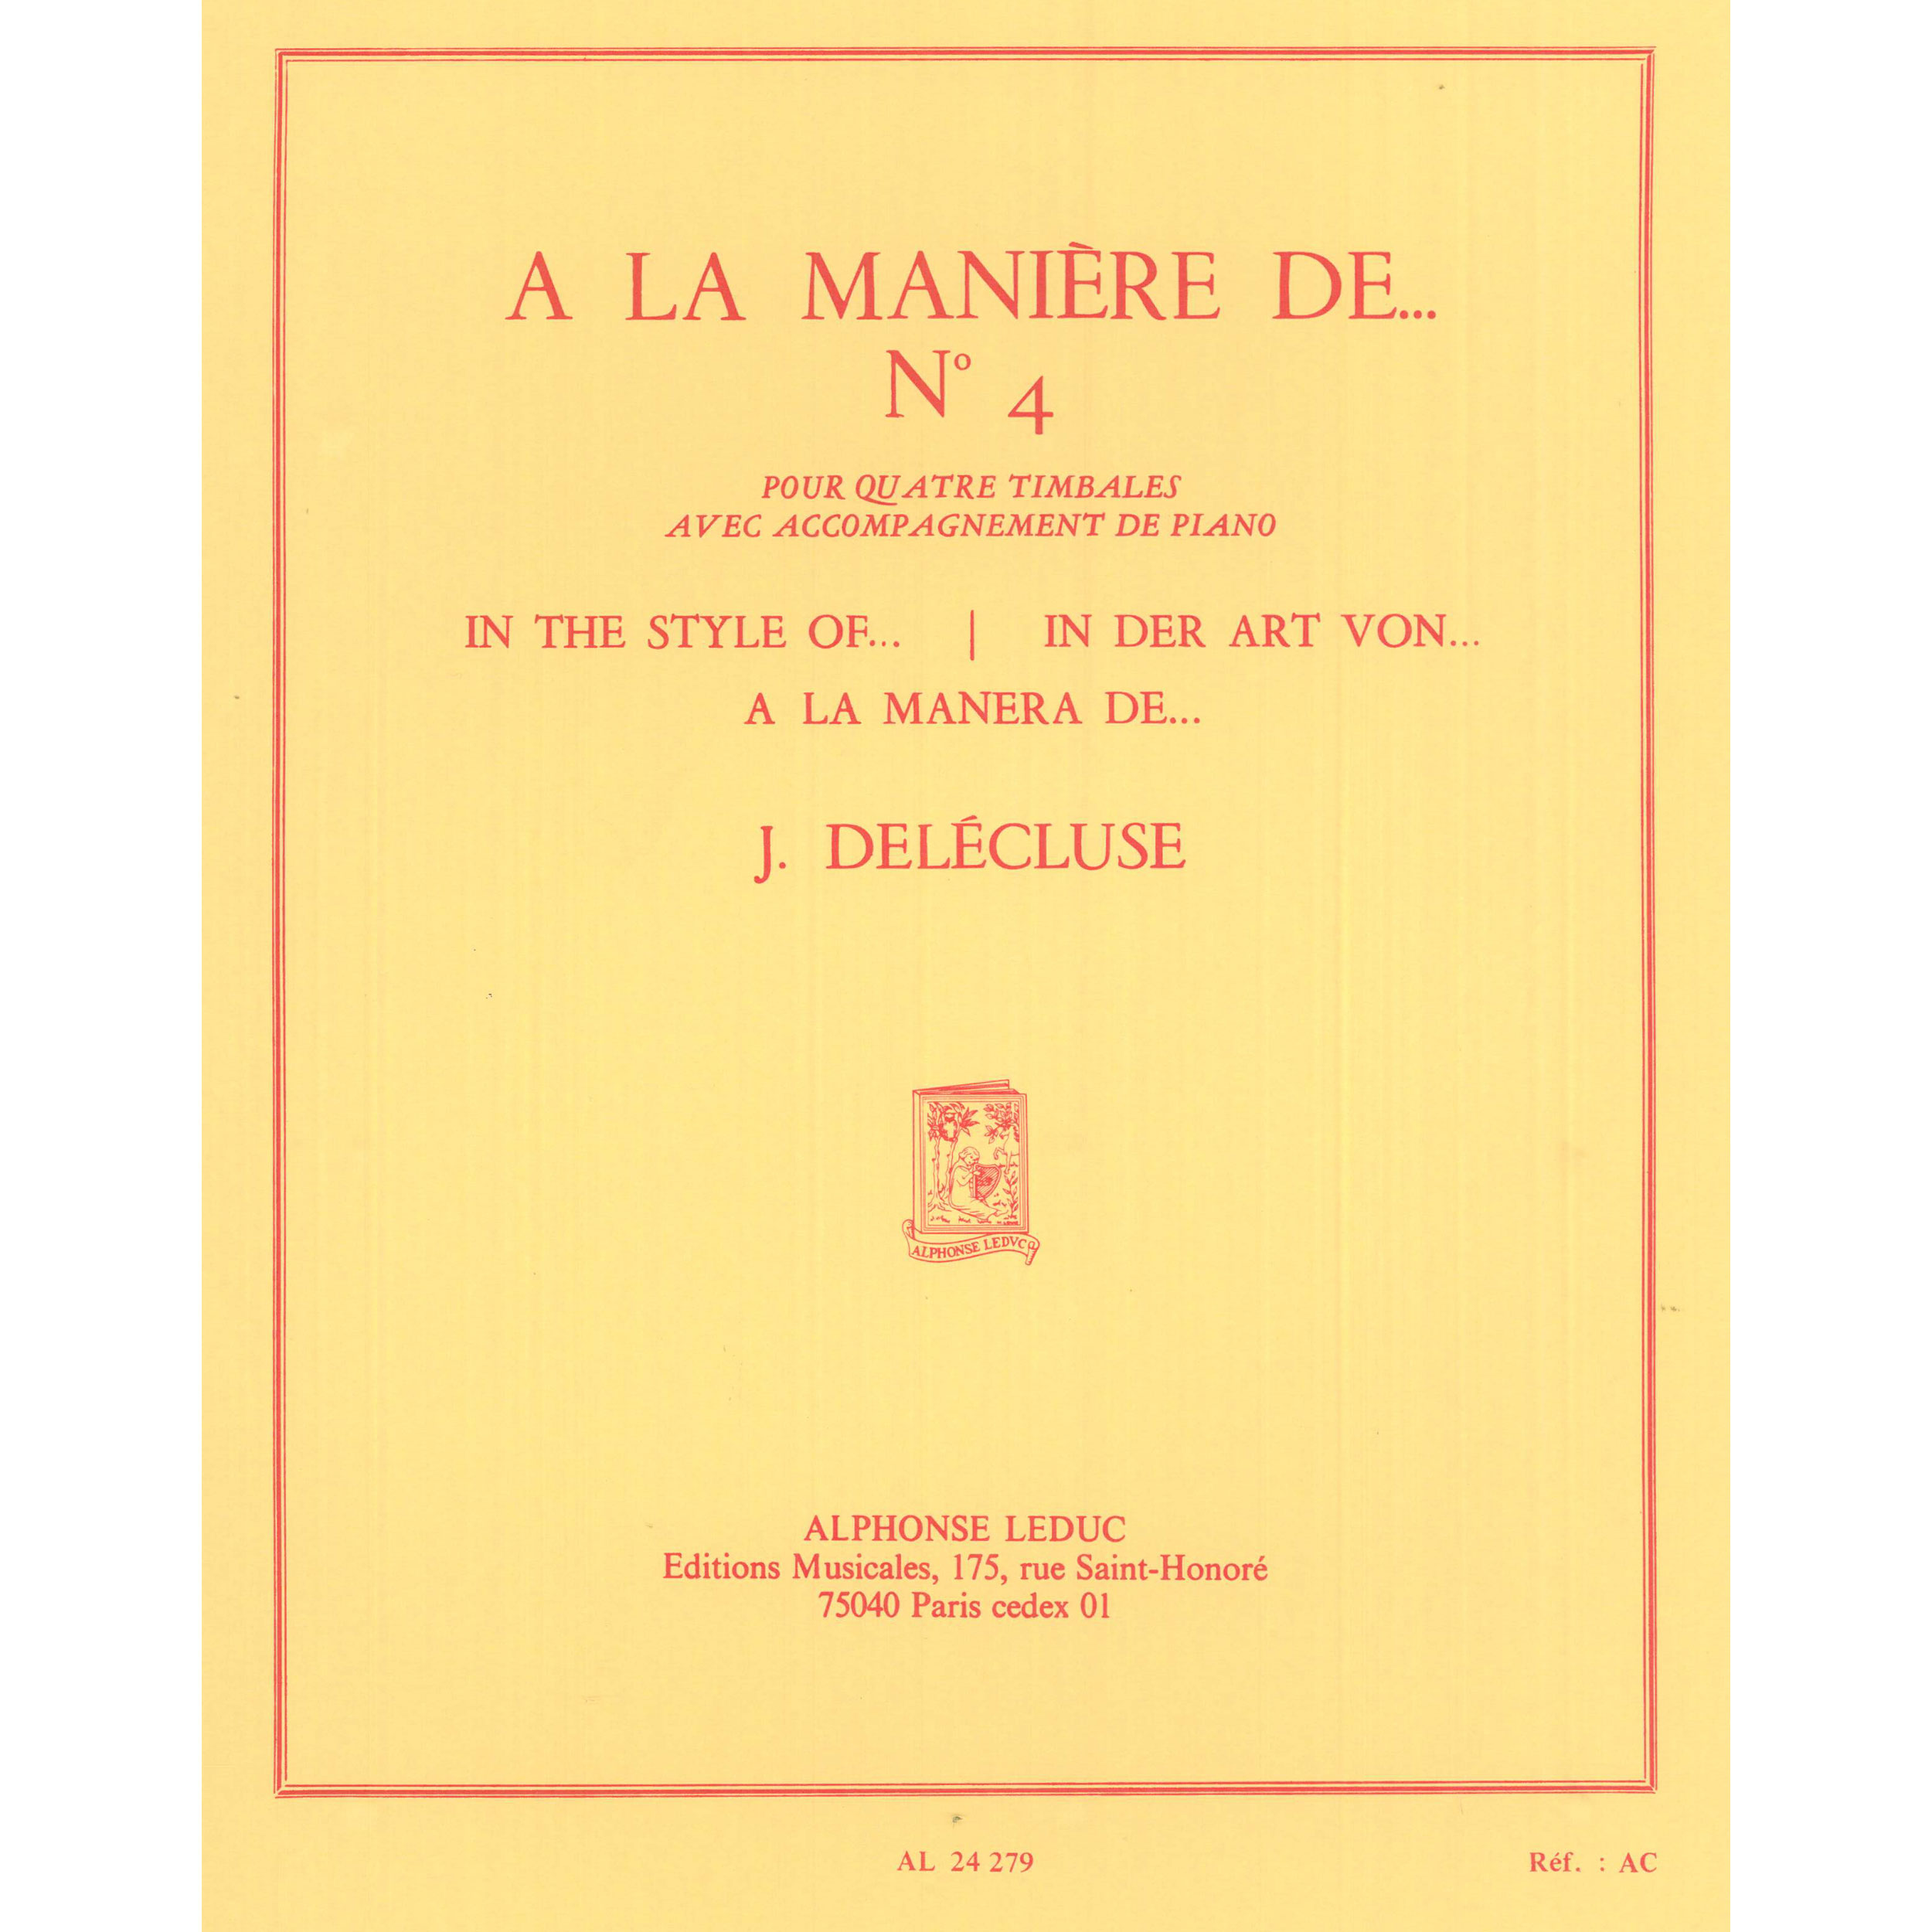 A la Maniere de... (In the Style of...) No. 4 by Jacques Delecluse